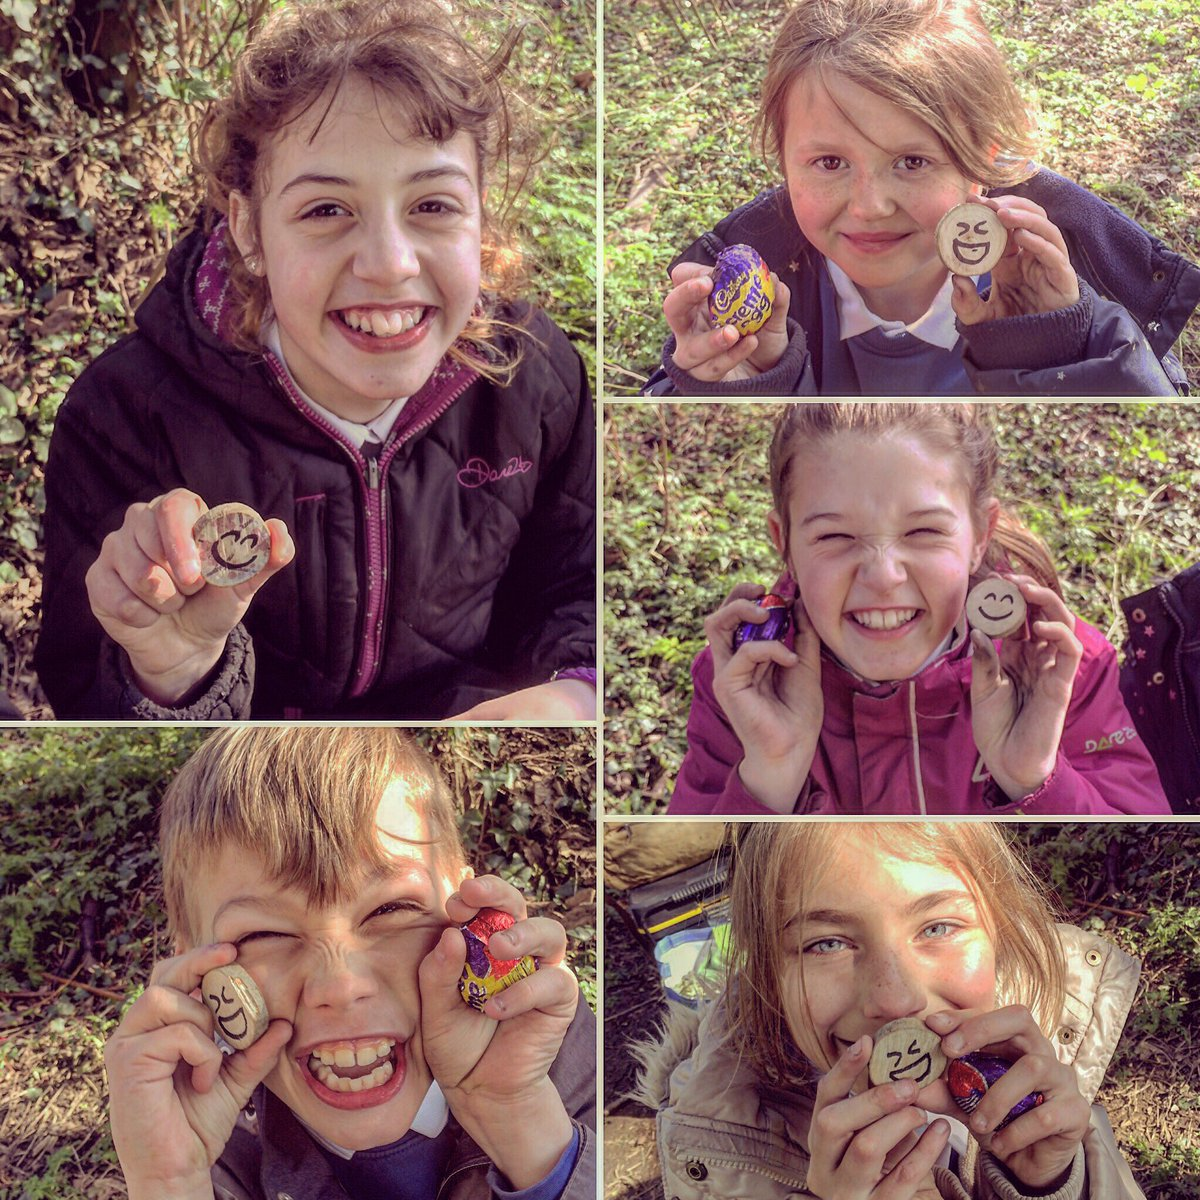 Last session before Easter, had to be an egg hunt! Lots of smiley faces @ForestSchooled #forestschools <br>http://pic.twitter.com/eNUDofpncc